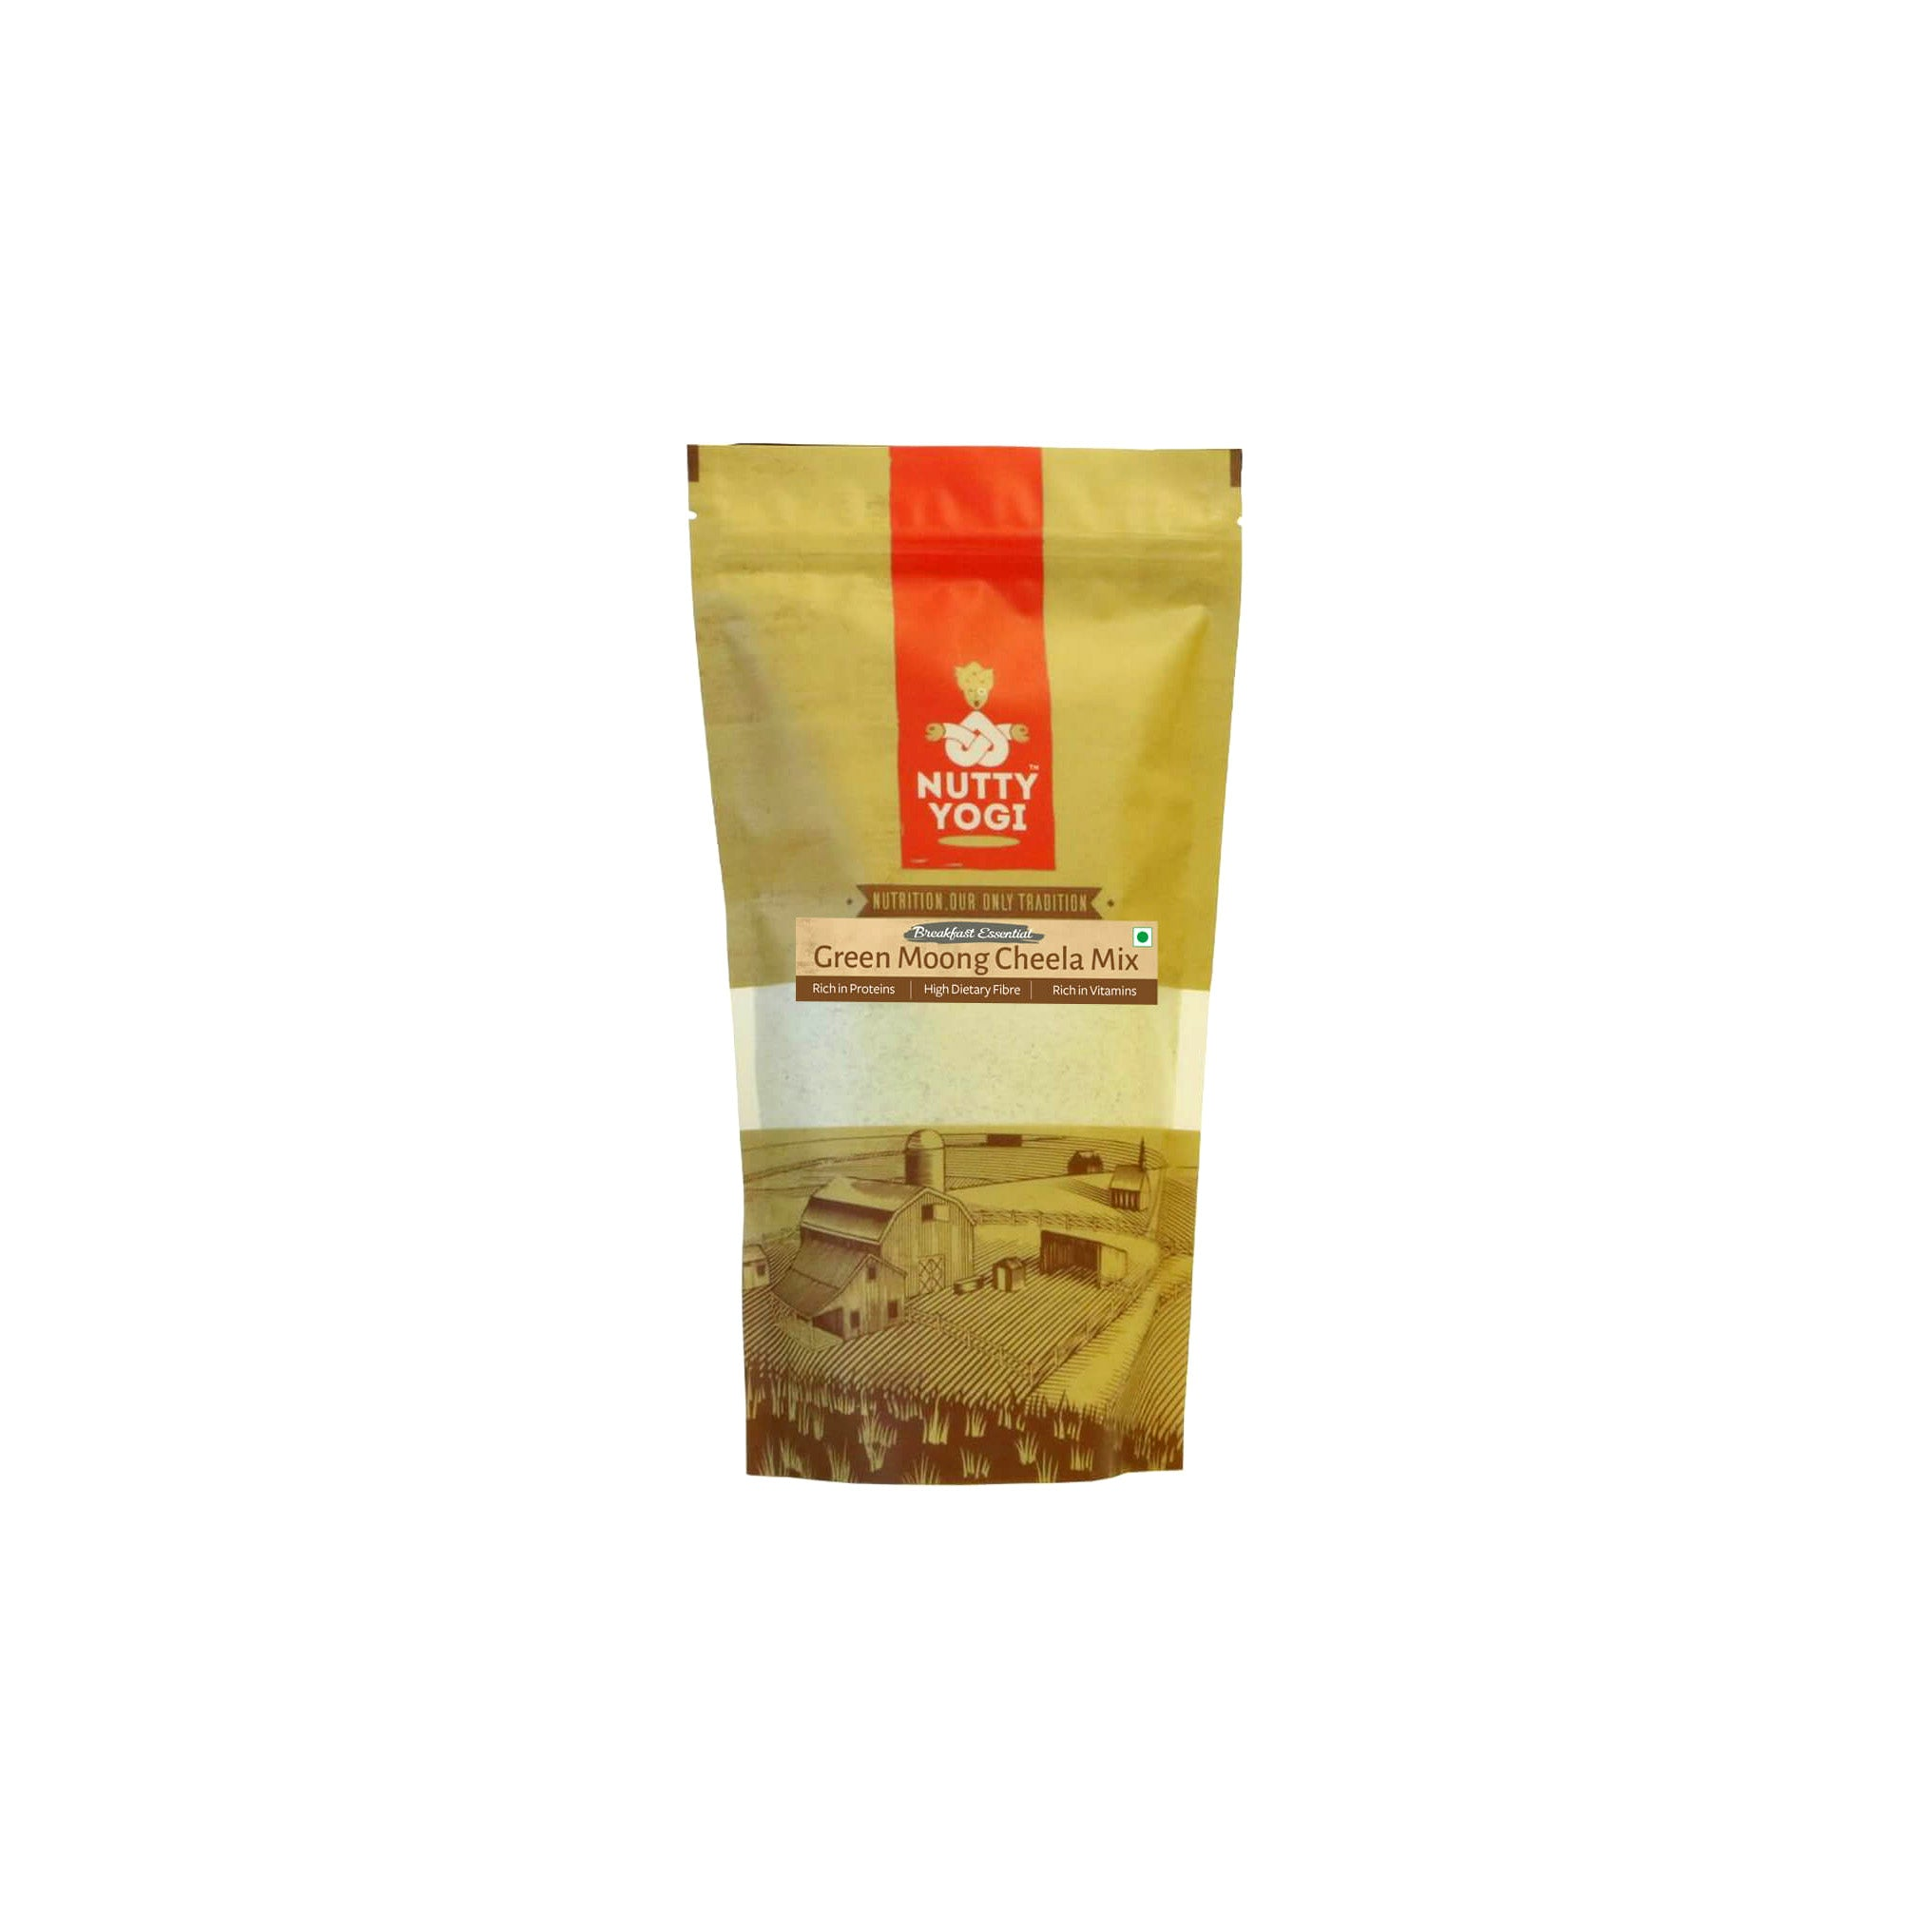 Nutty Yogi Green Moong Daal Cheela Mix 400g